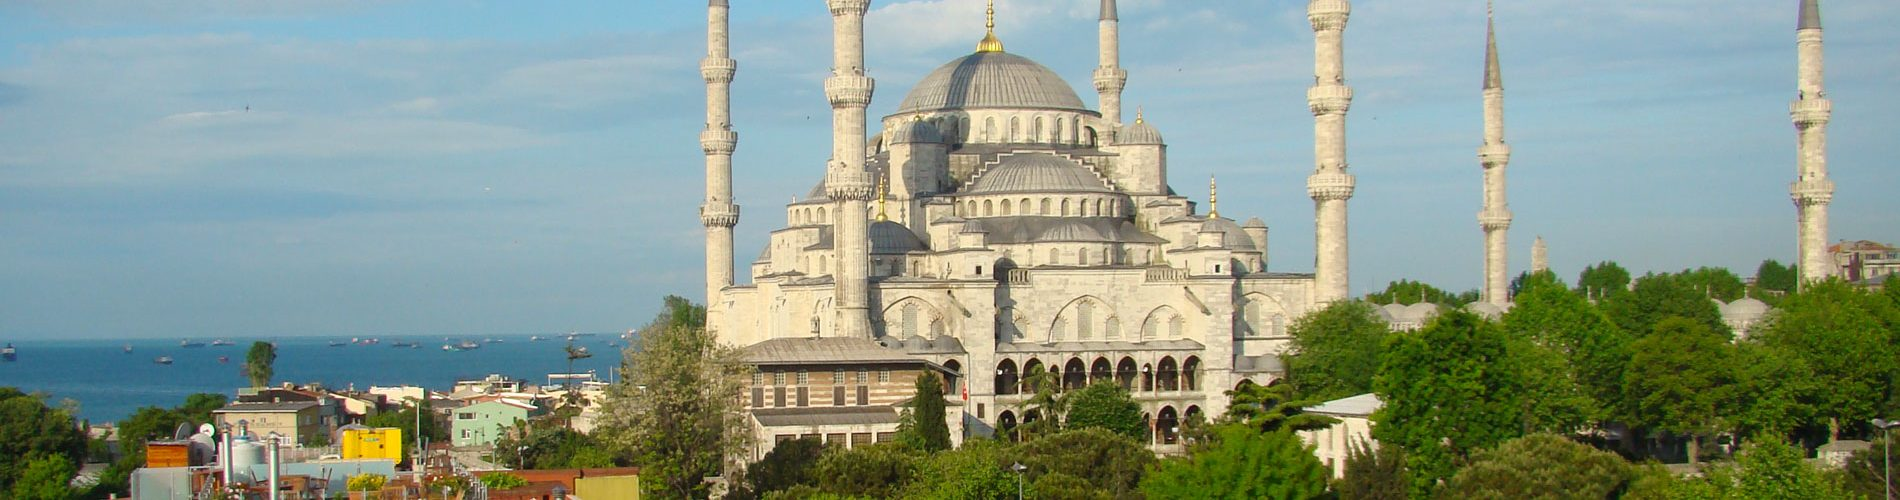 Blue-mosque-header-2